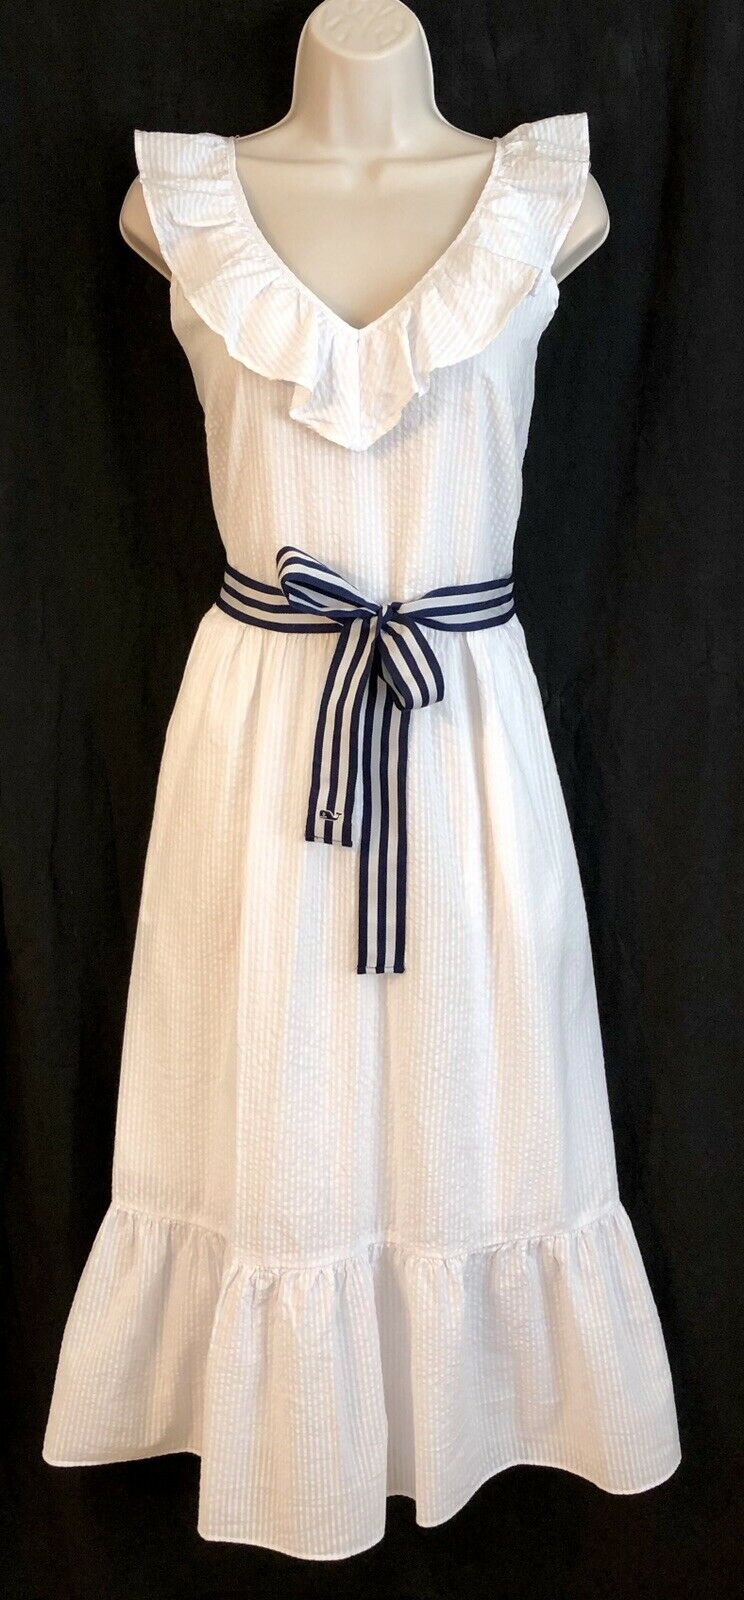 Vineyard Vines Target Dress Größe L Sleeveless Ruffle Tie Waisted V-Neck Weiß